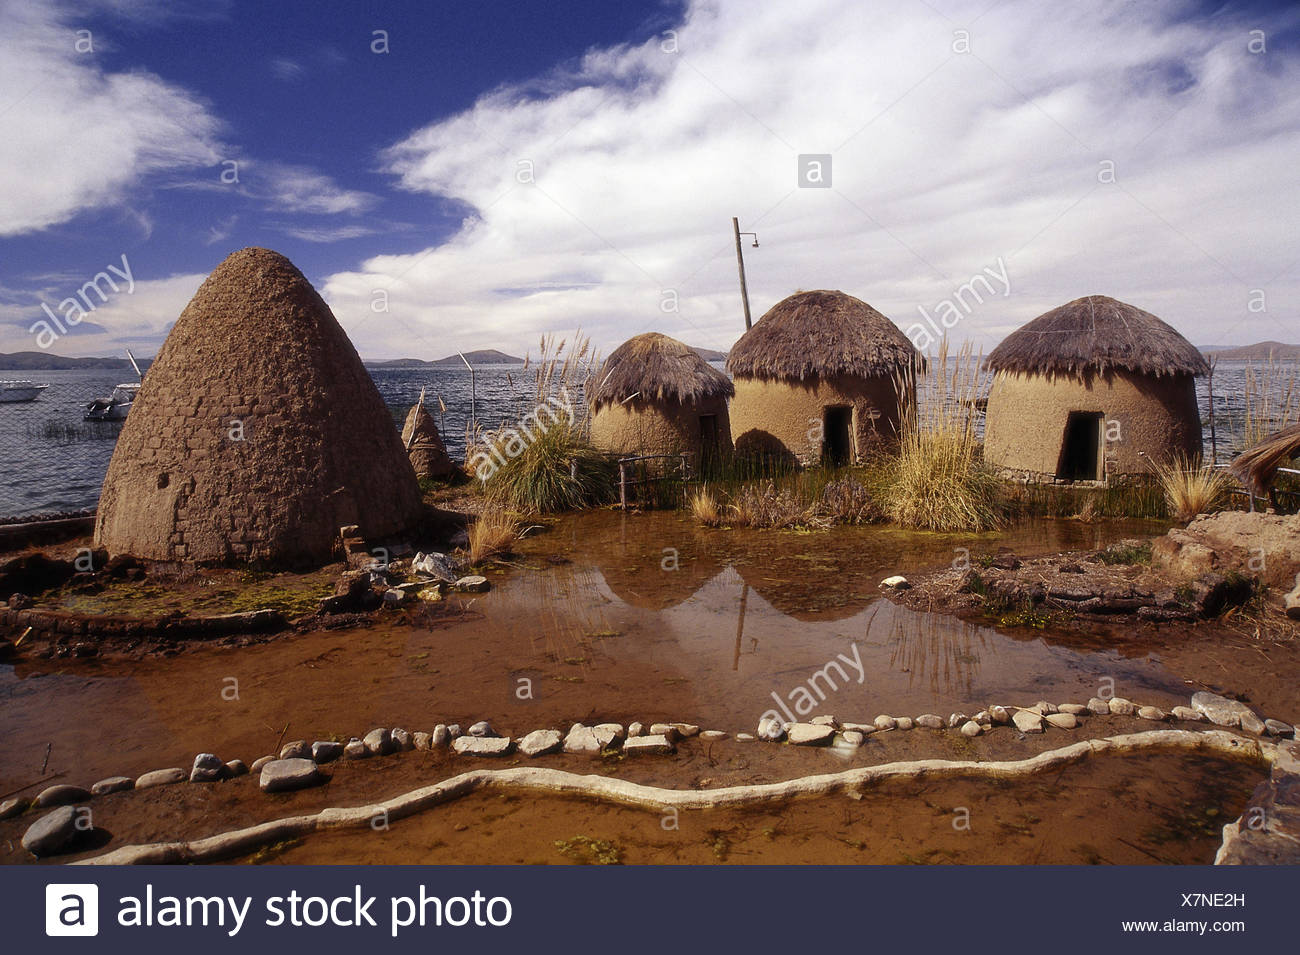 Bolivia, Titicacasee, shore, mucky hut, traditionally, outside, hut, houses, accomodation, water, lake, loam, construction method, tradition, grass roofs, - Stock Image